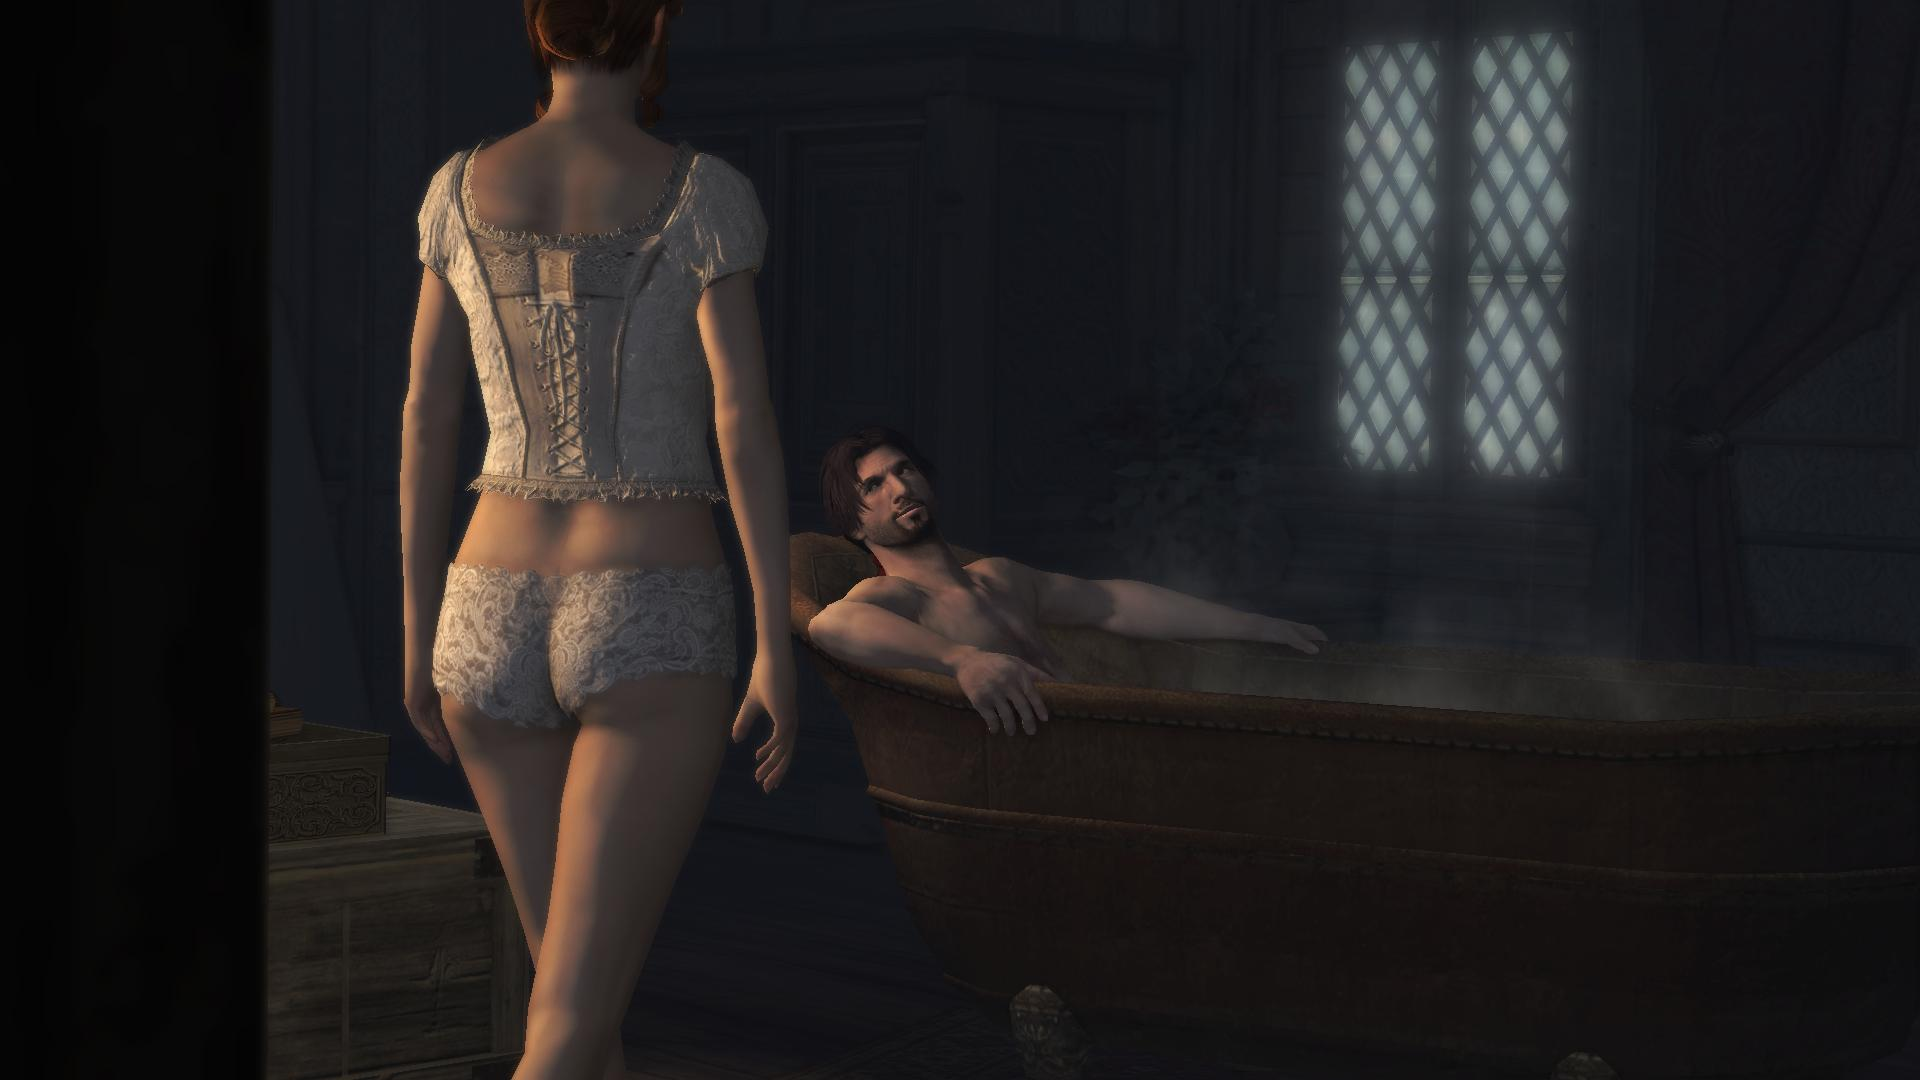 Assassins creed 3 nudepatch nude galleries